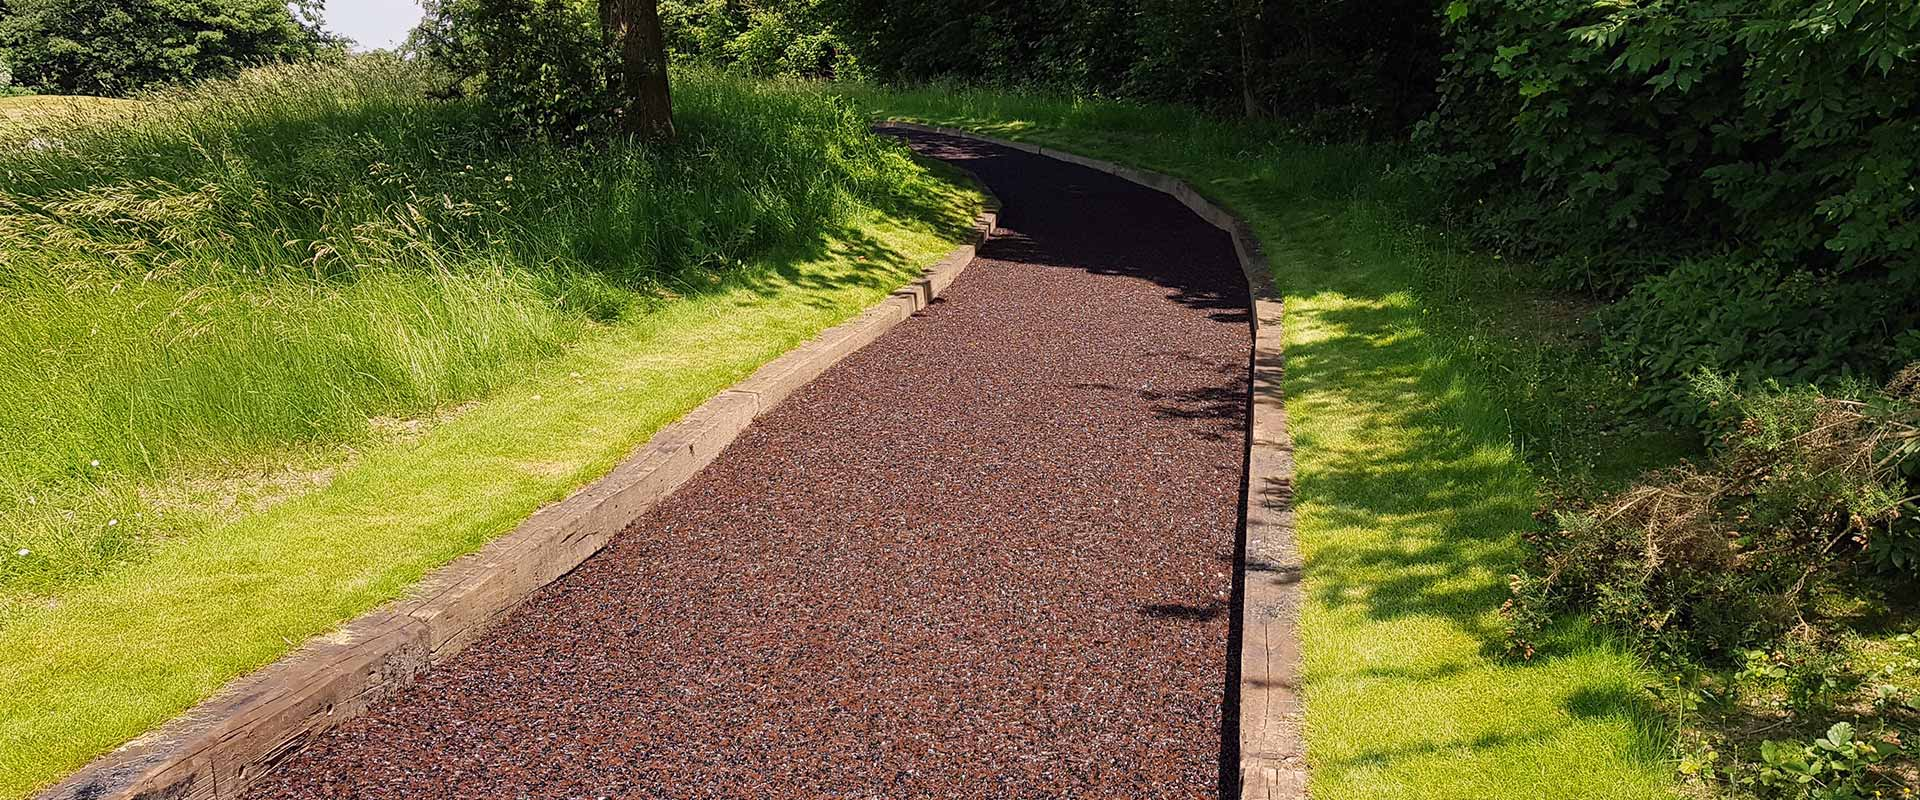 rubber mulch path